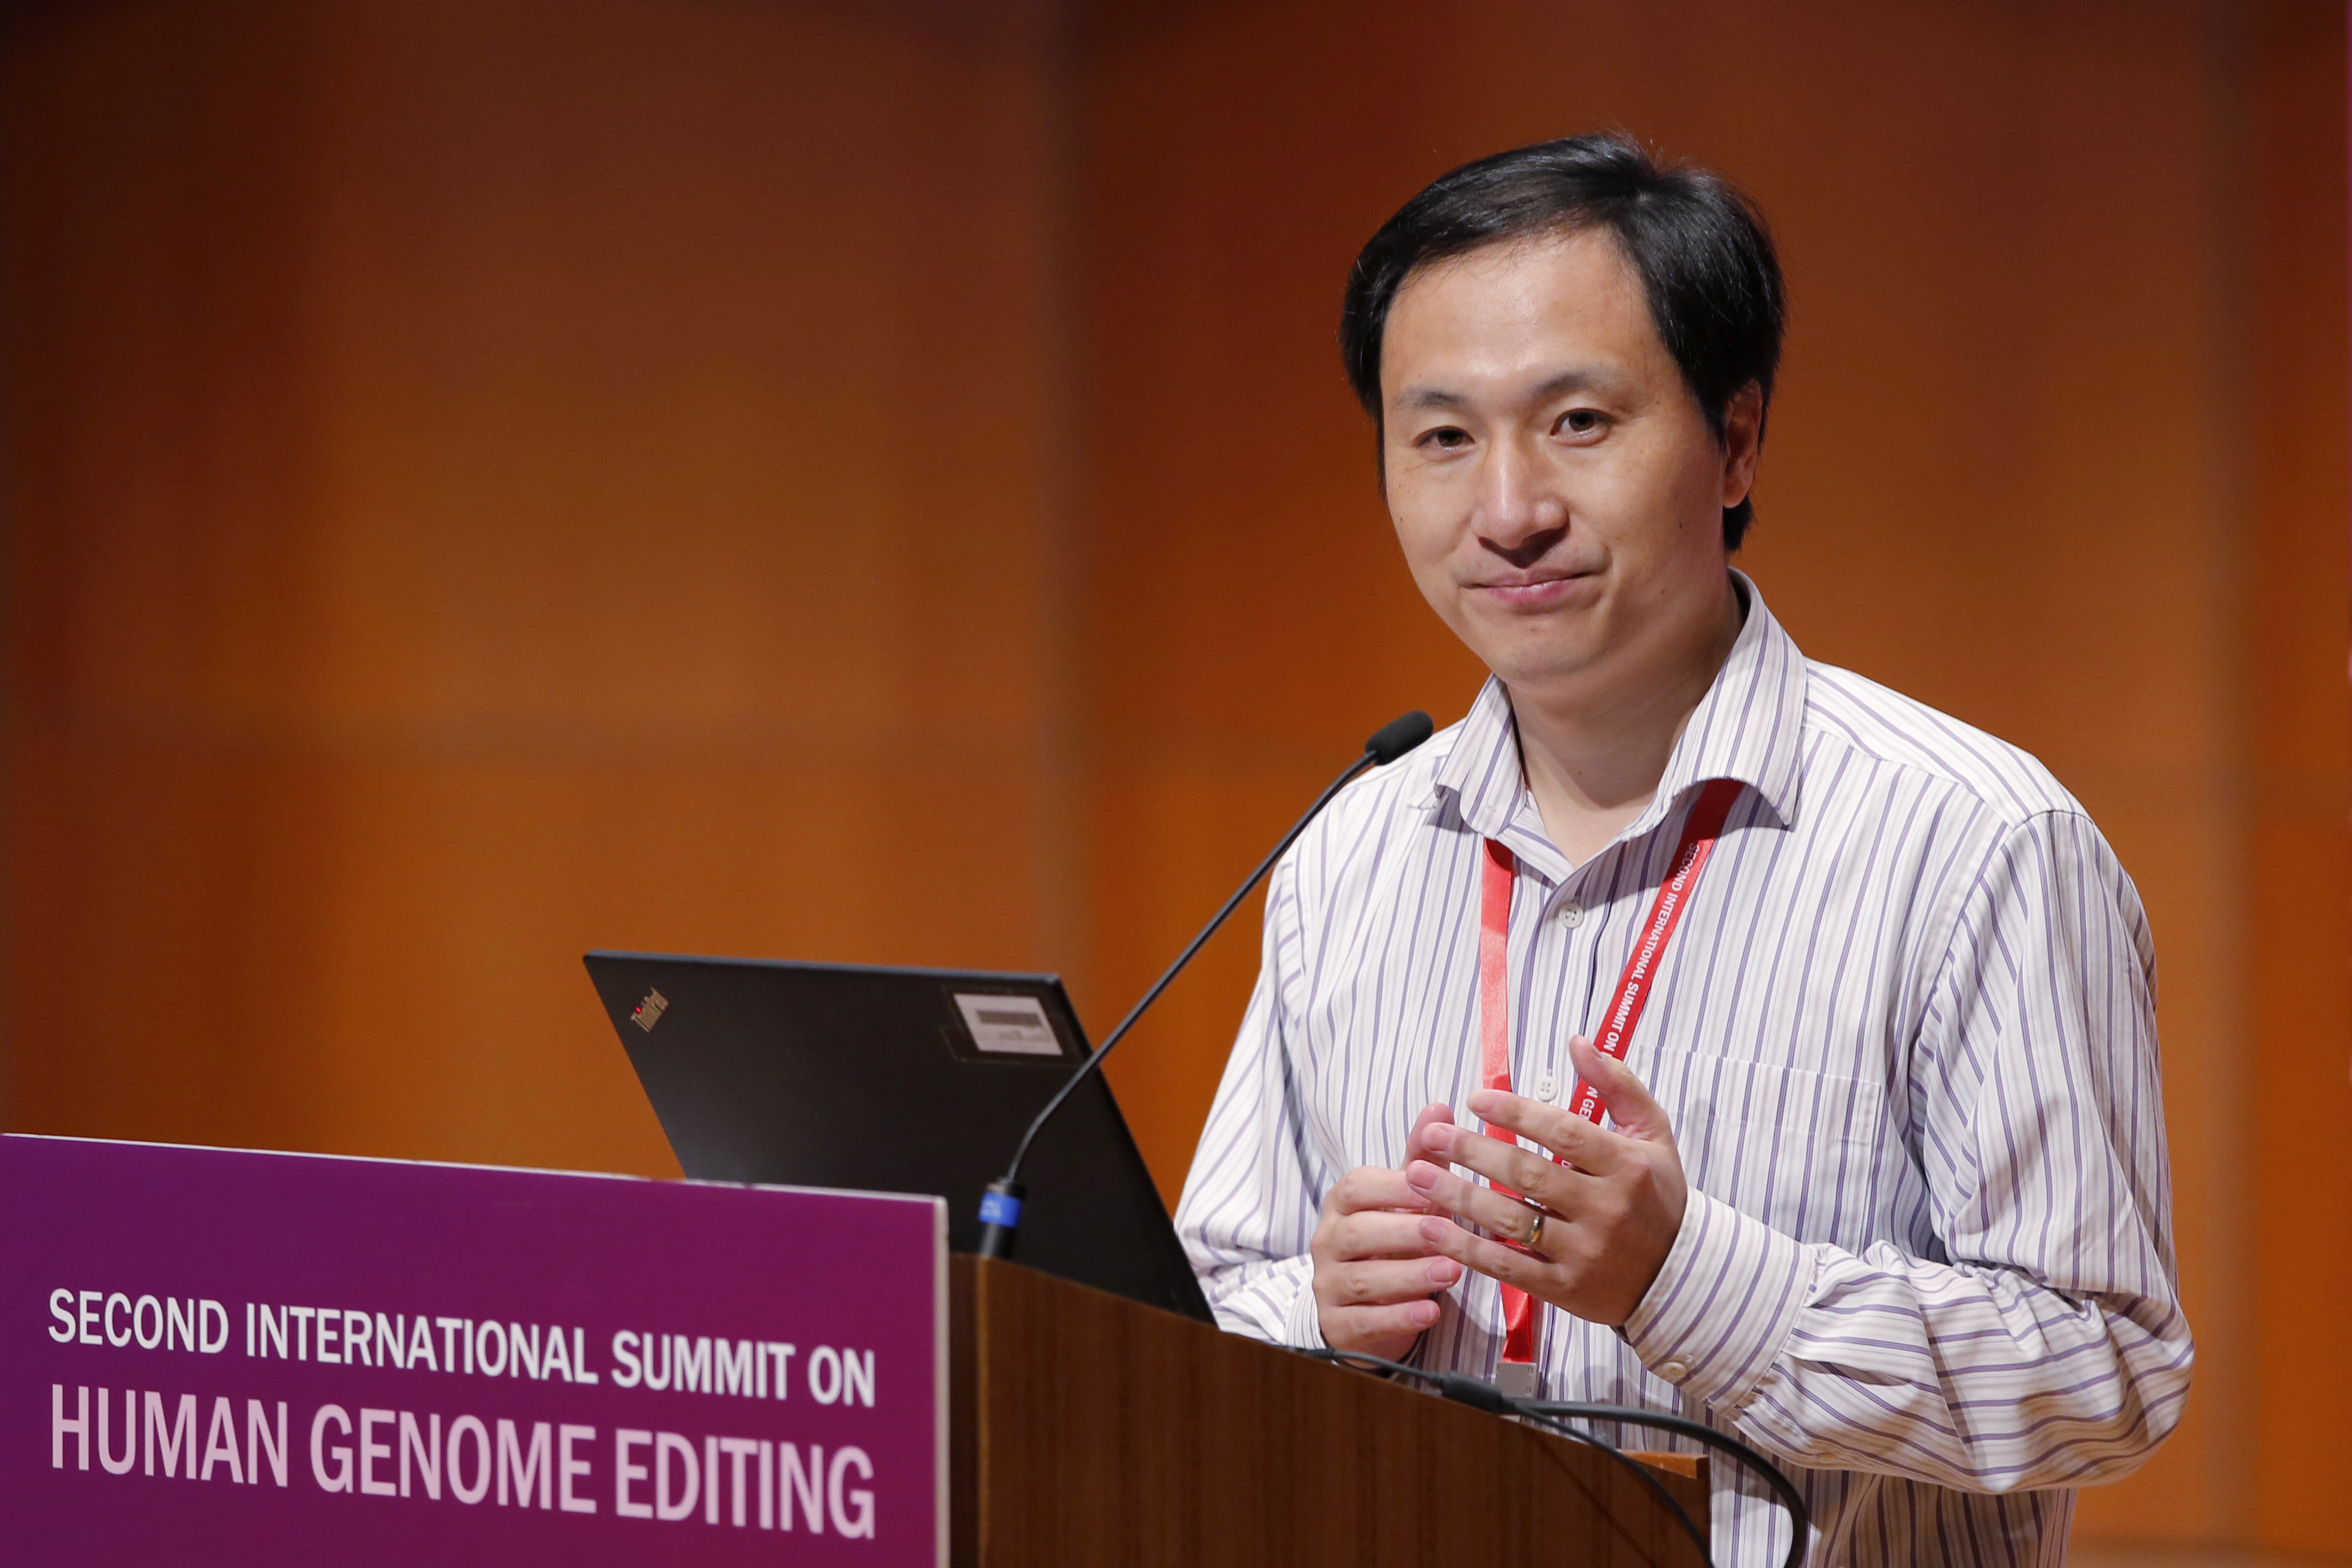 Scientist He Jiankui, pictured at a conference in April 2019, was sentenced to three years in prison and fined 3 million yuan ($430,000) in China for leading the team that gene edited babies.